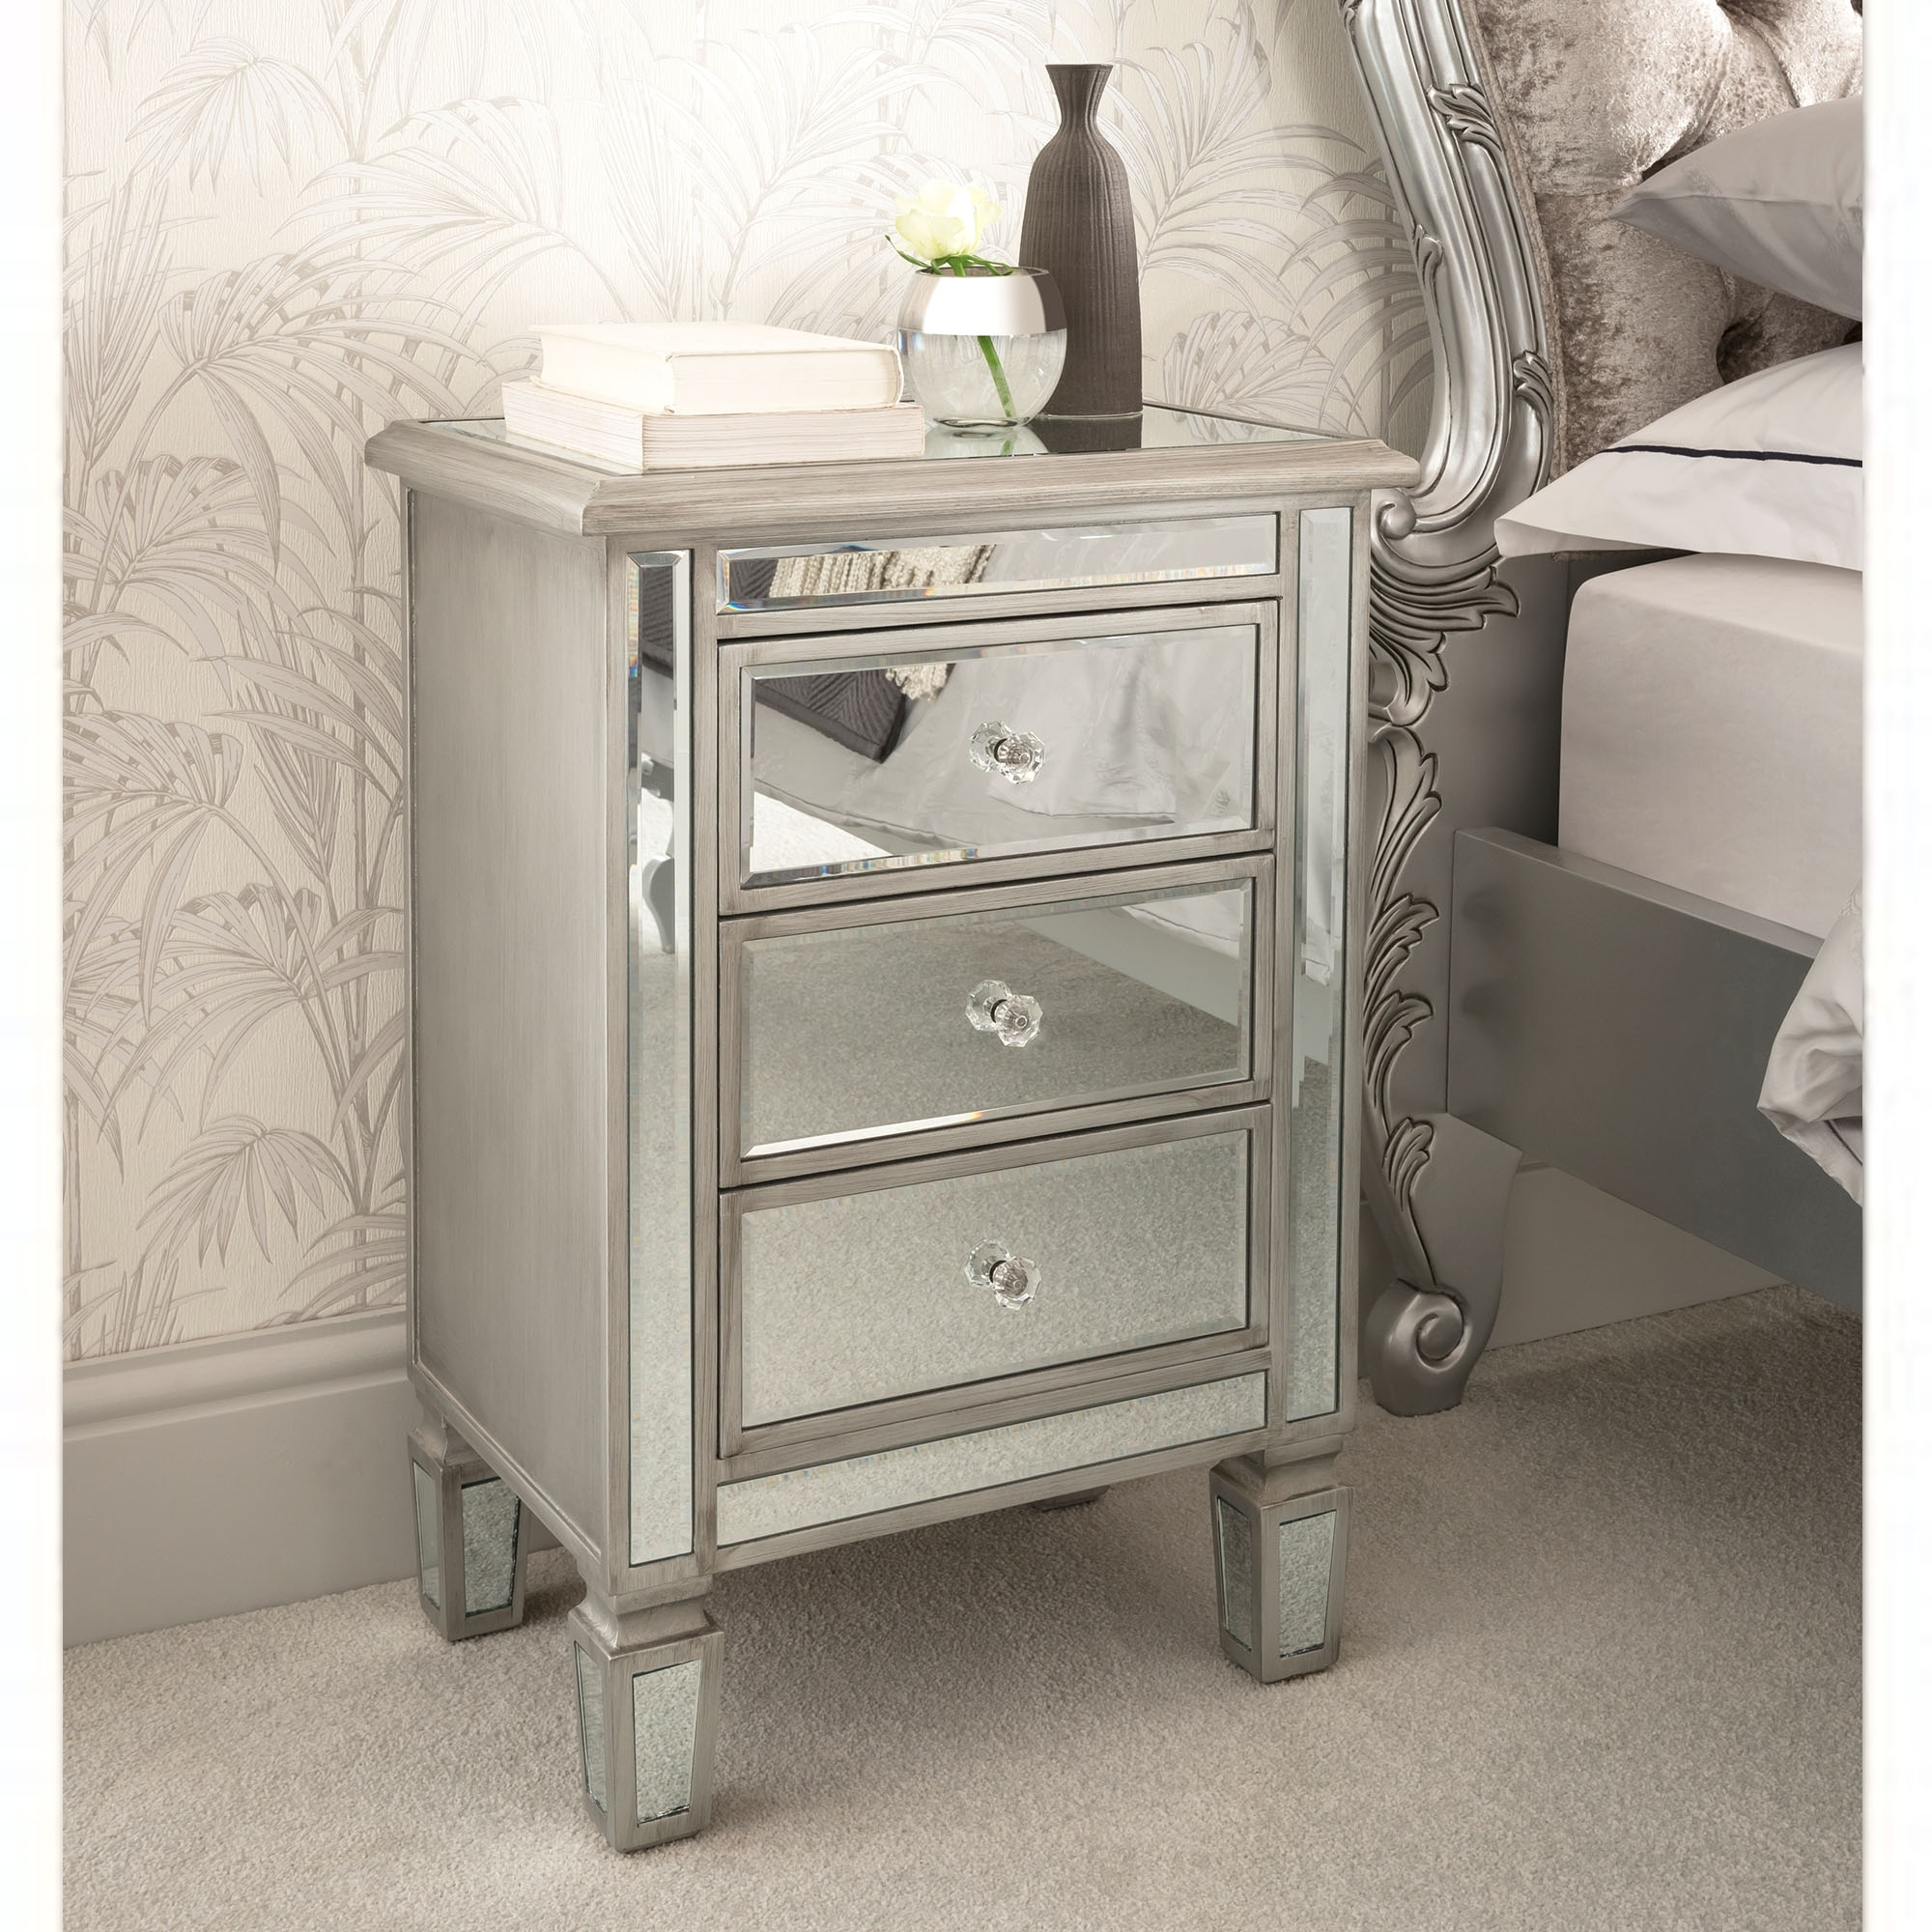 Venetian Mirrored Bedside Table | Mirrored Bedroom ...